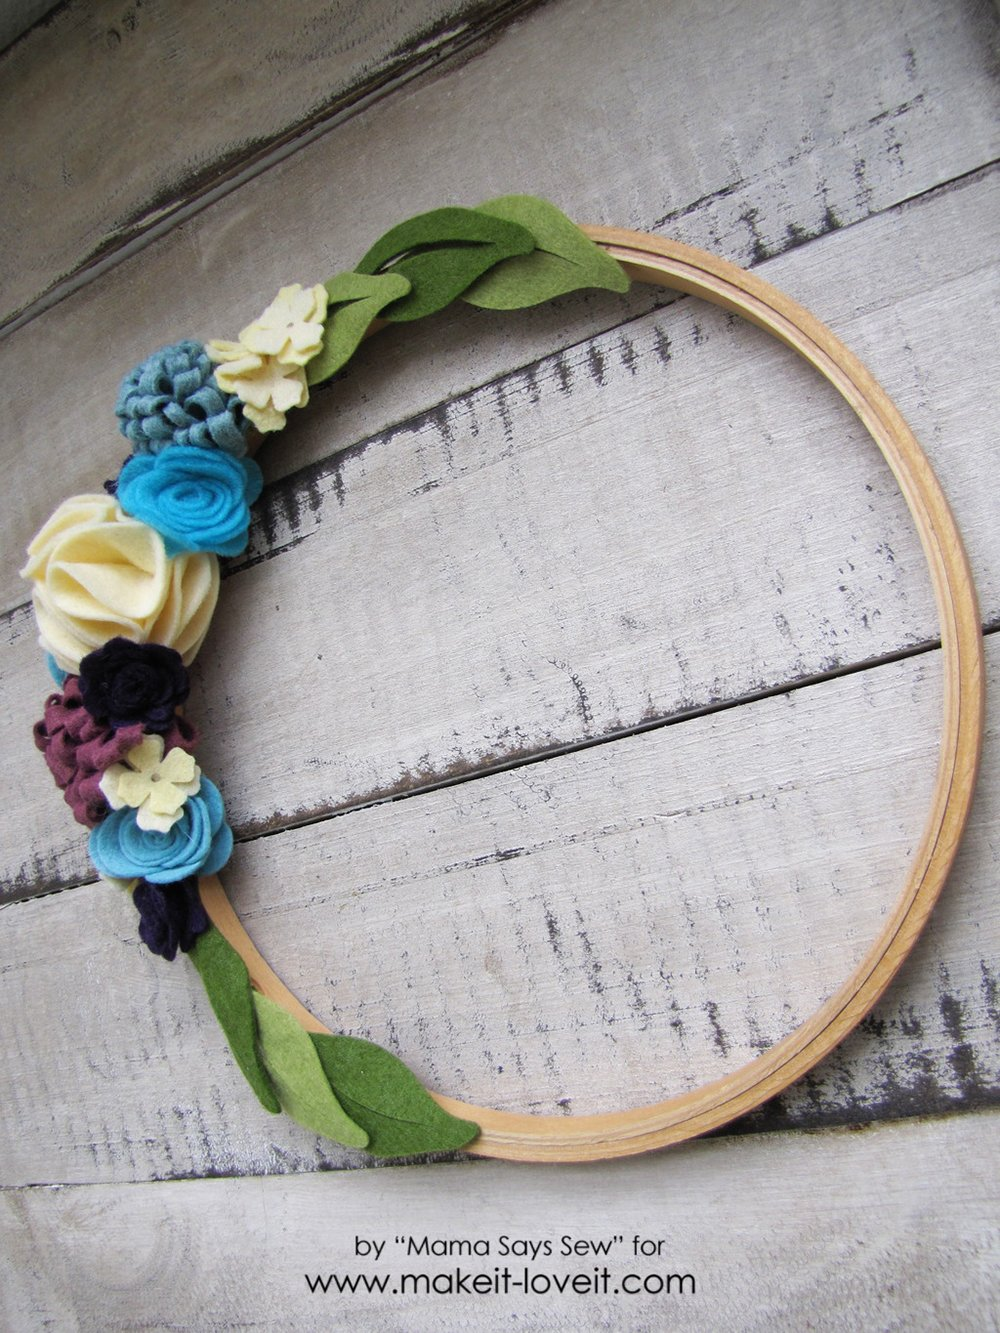 Make your own butterfly mobile or dreamcatcher (2)